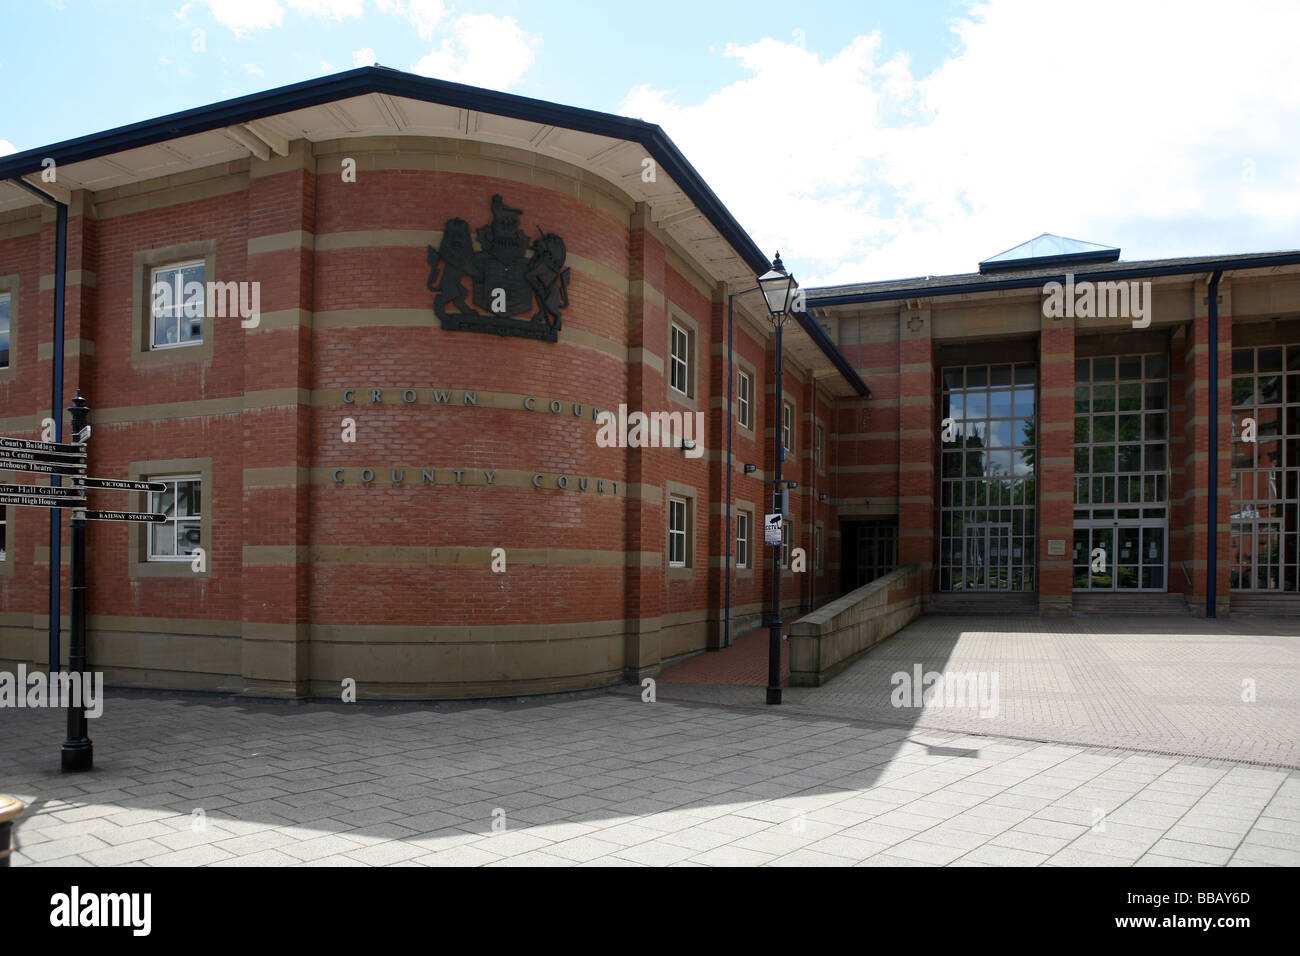 Stafford Crown Court and Staffordshire County Court in